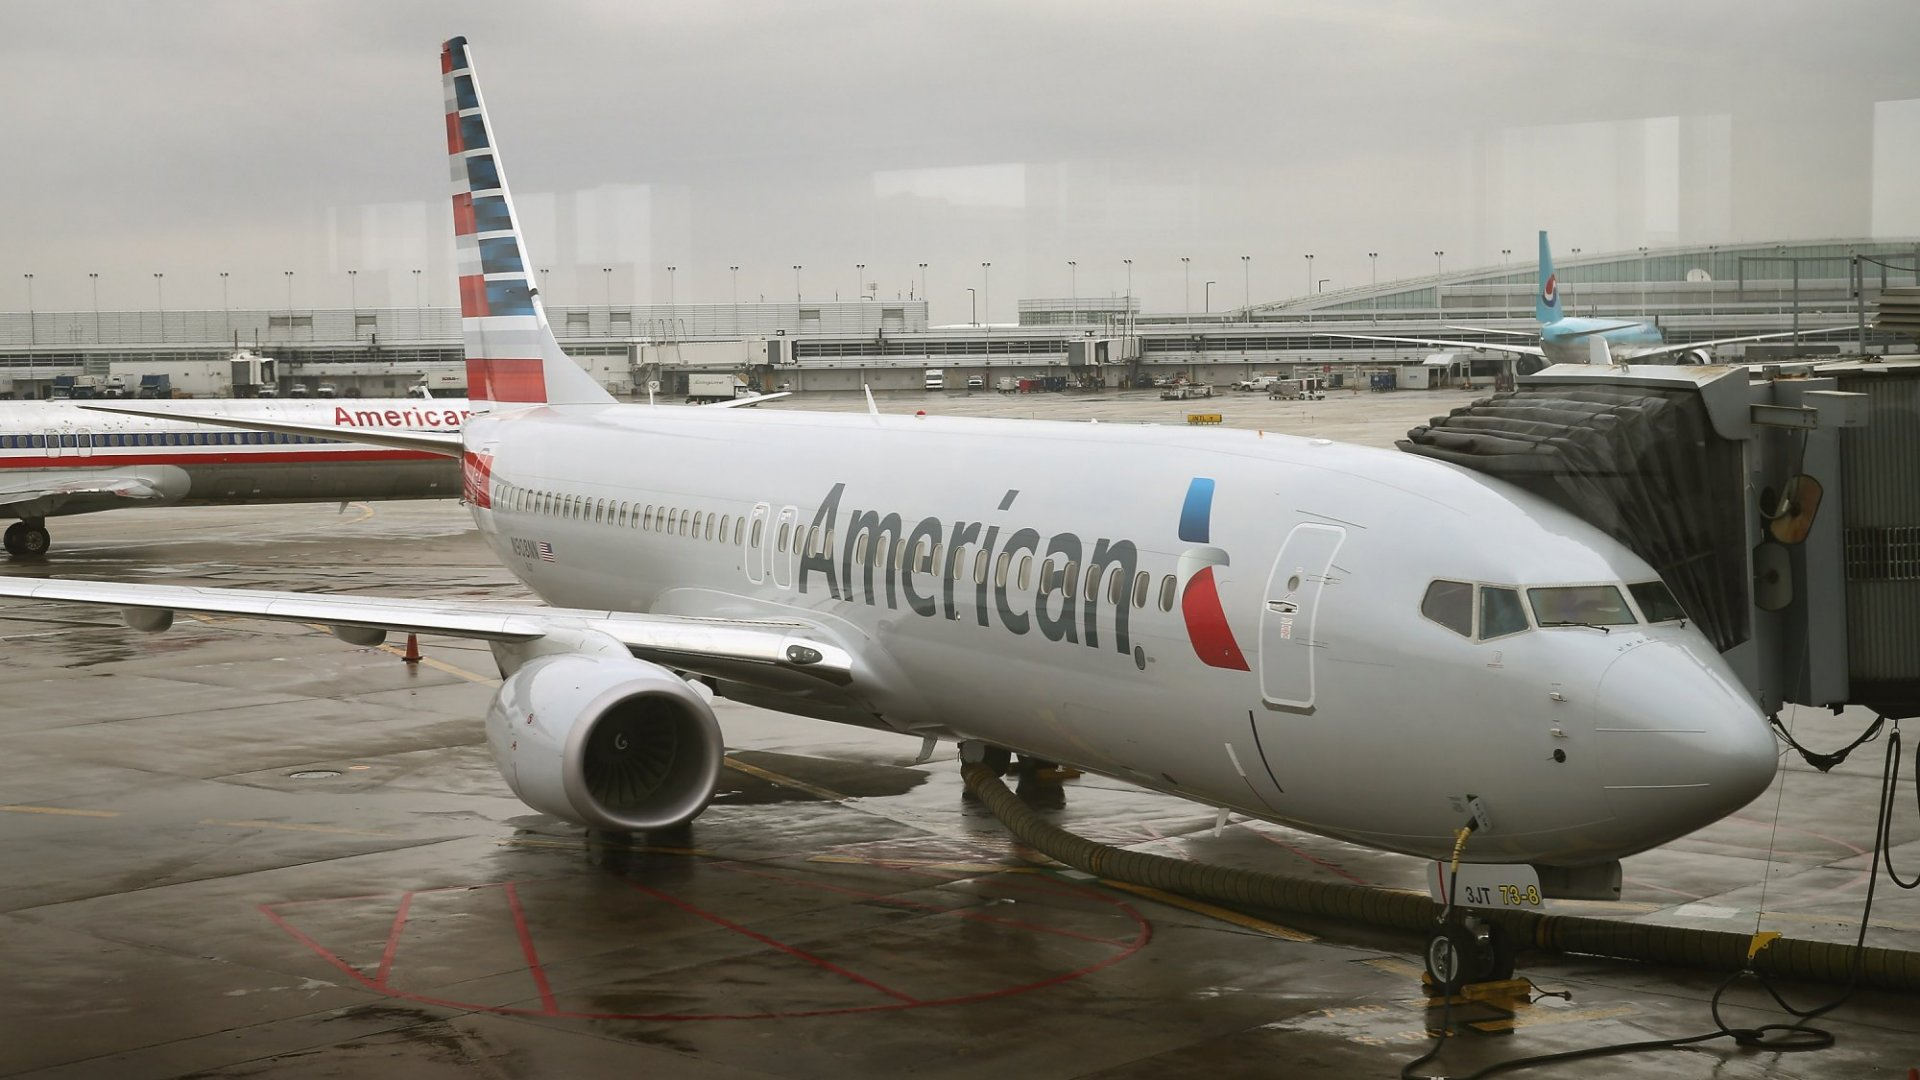 American Airlines Passenger: 'My Son Nearly Died. I'm Not Going to Stop'